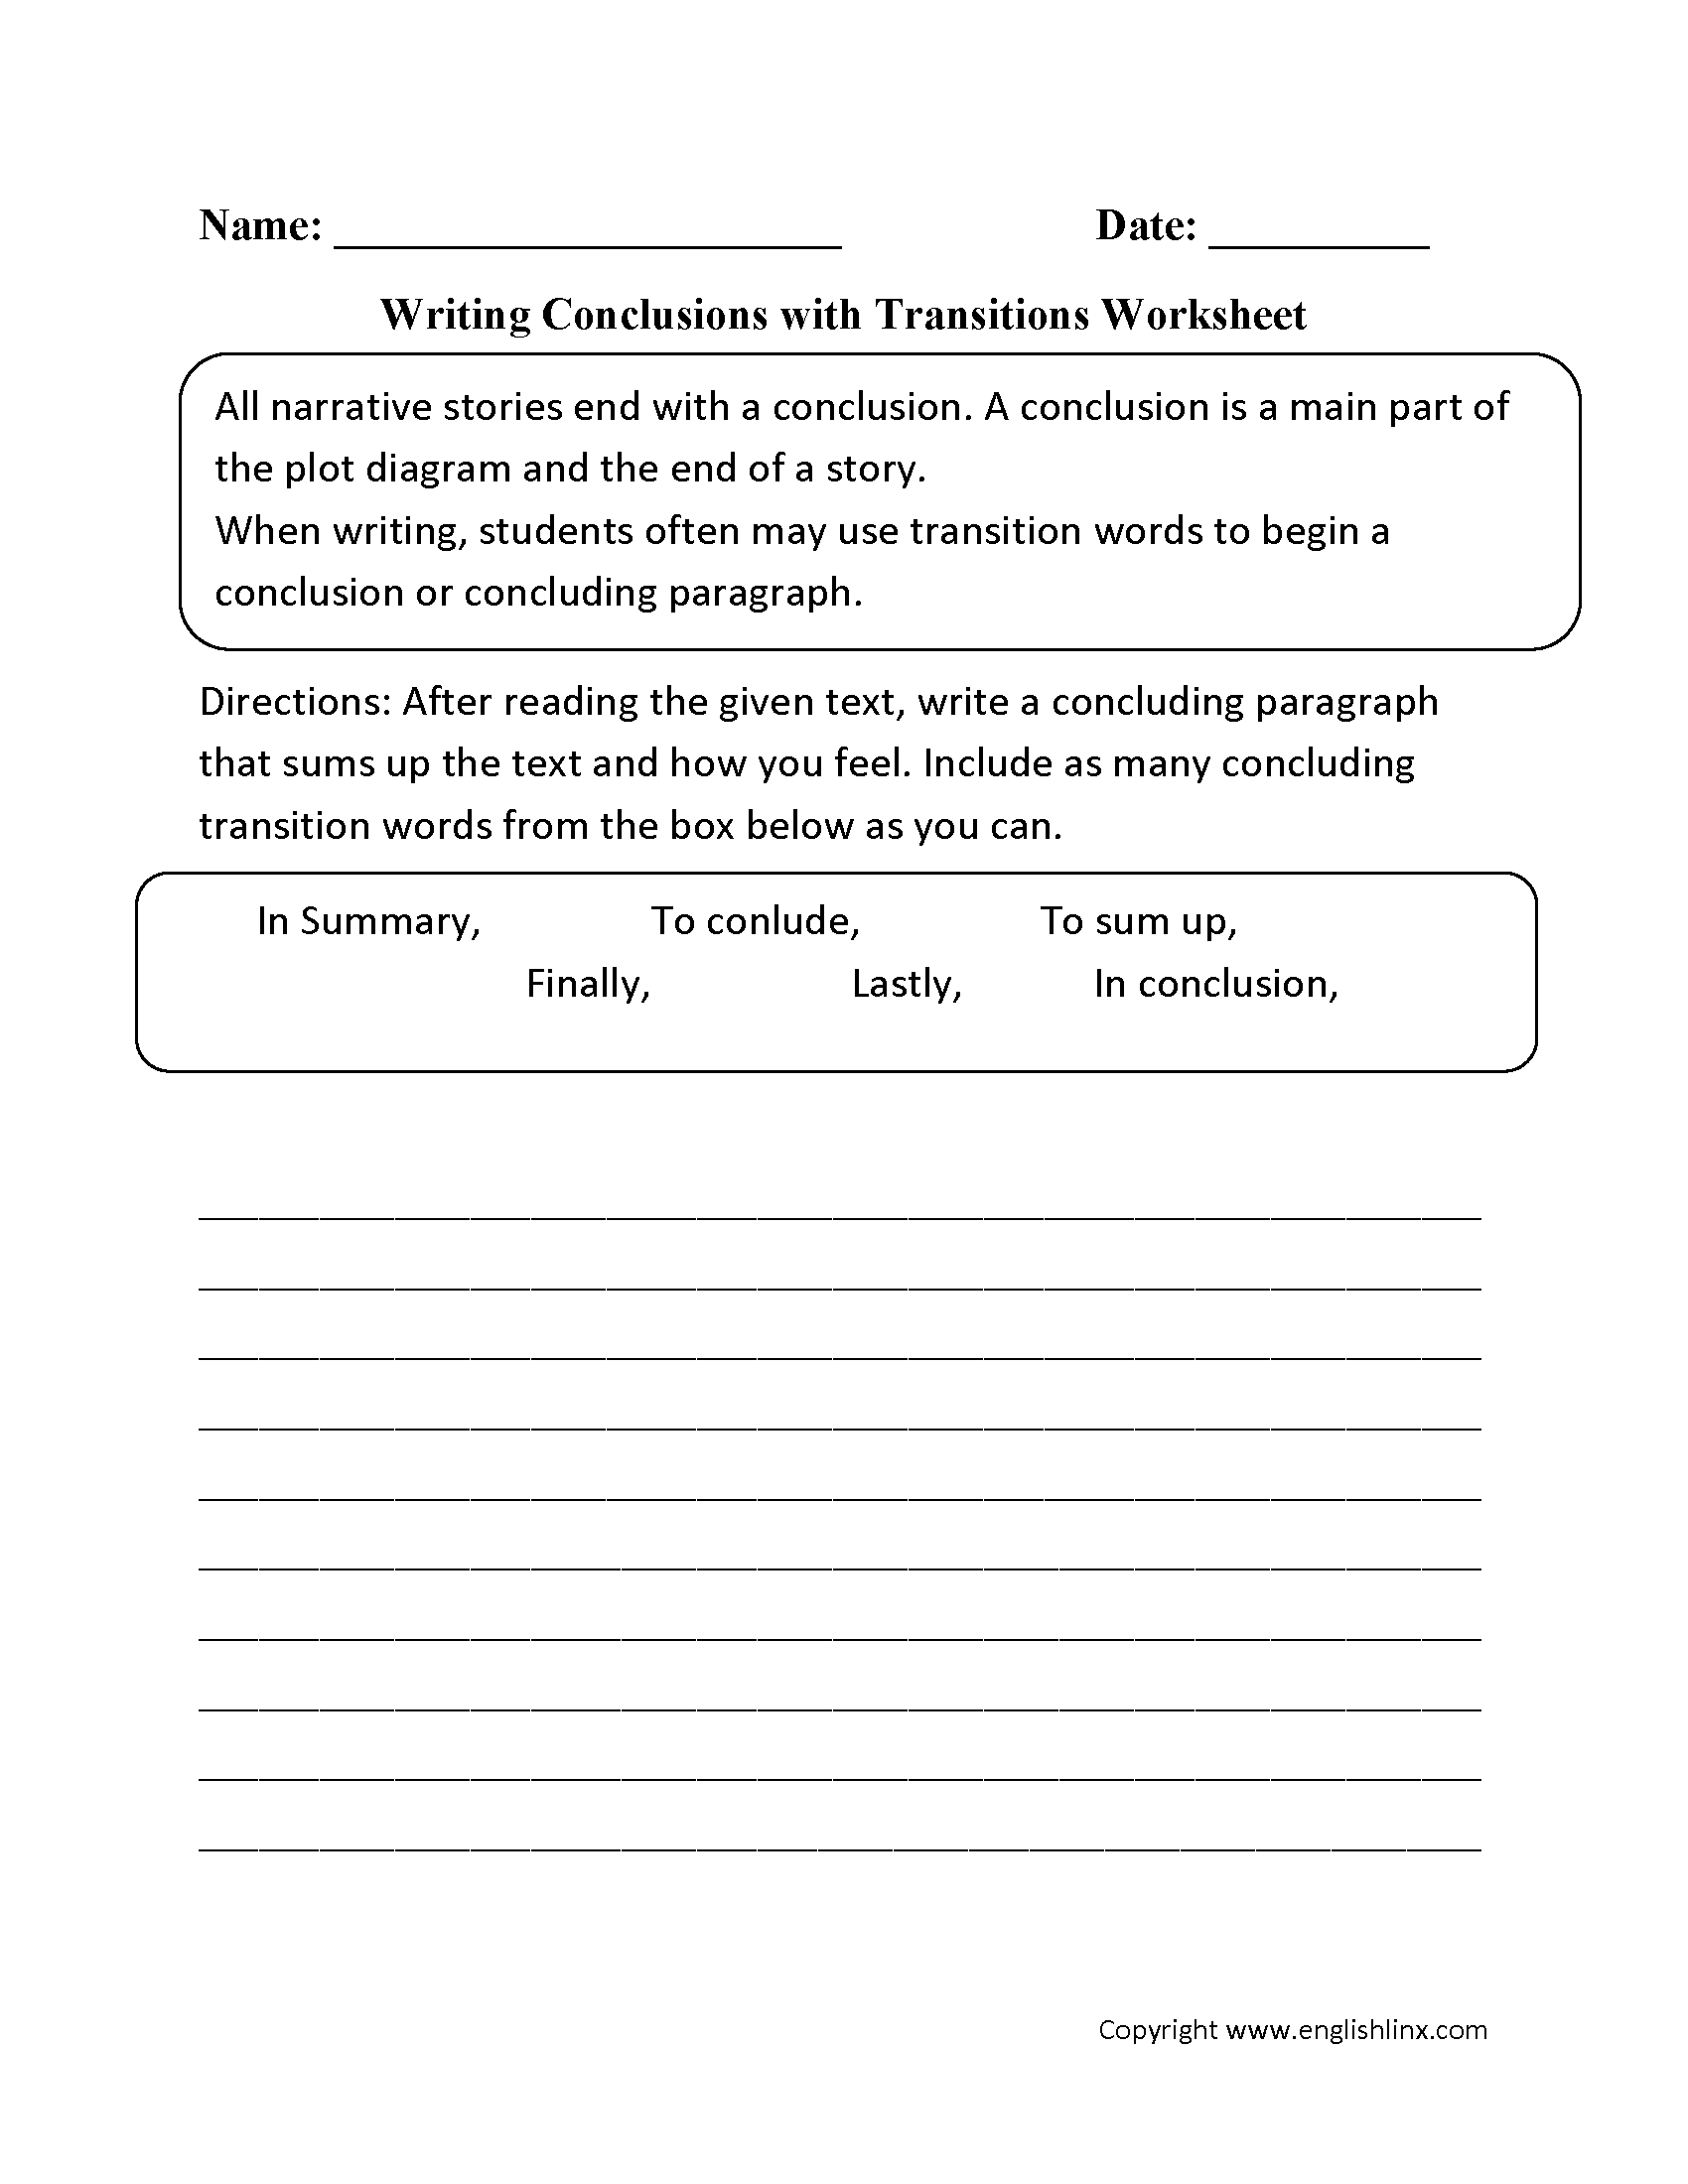 Words To Use For Conclusion Transition Words And Phrases For Essays 01 23